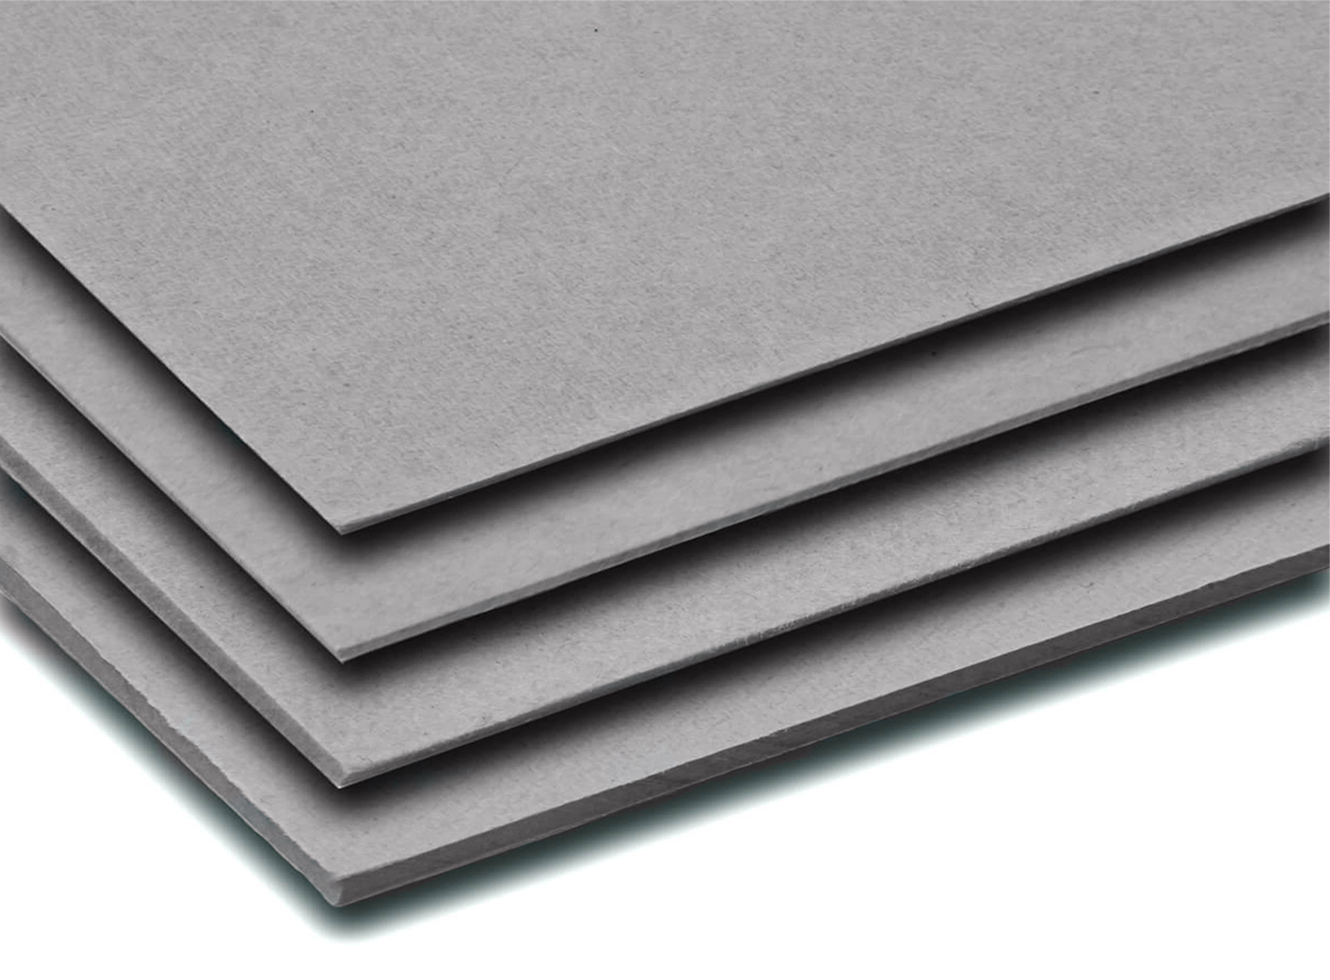 Folding Archival Bookbinding Acid-Free Grey Board - Your